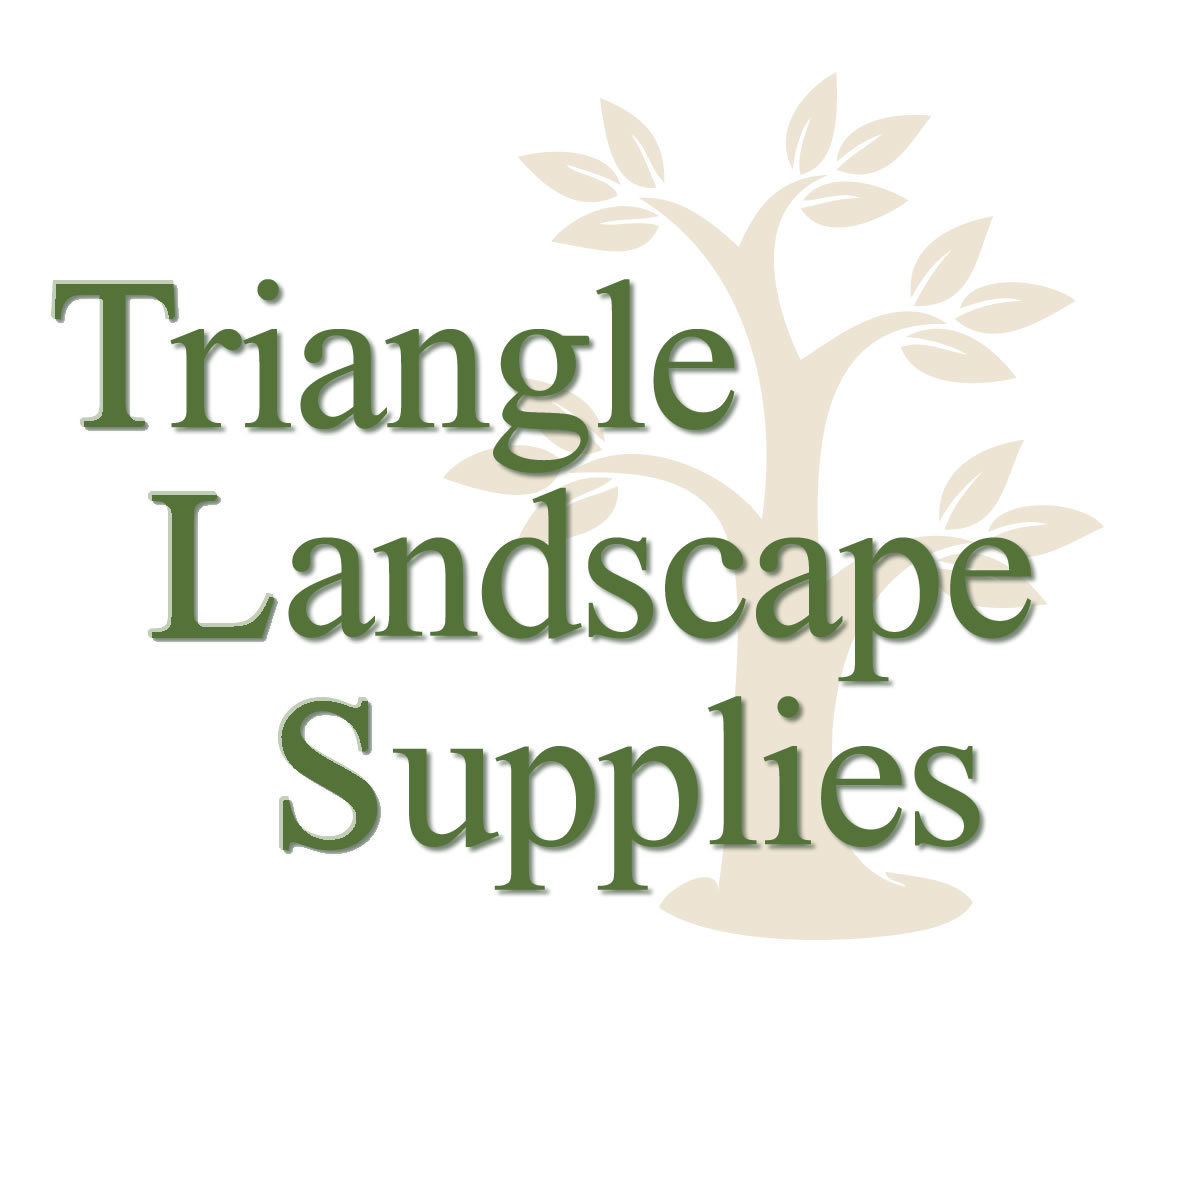 Triangle Landscape Supplies, Raleigh - Raleigh, NC - Lawn Care & Grounds Maintenance